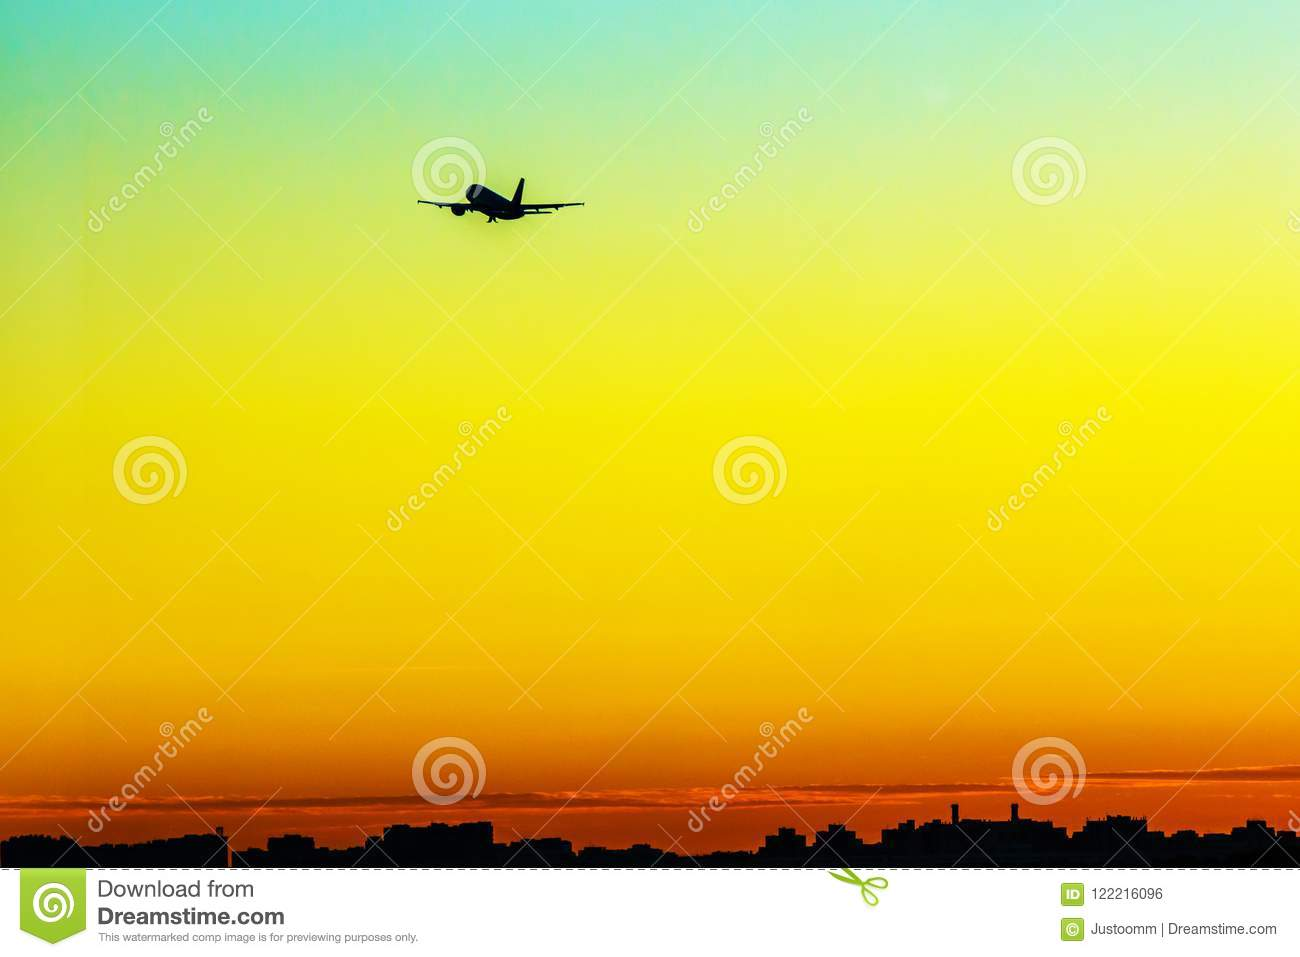 Plane taking off into yellow sunset